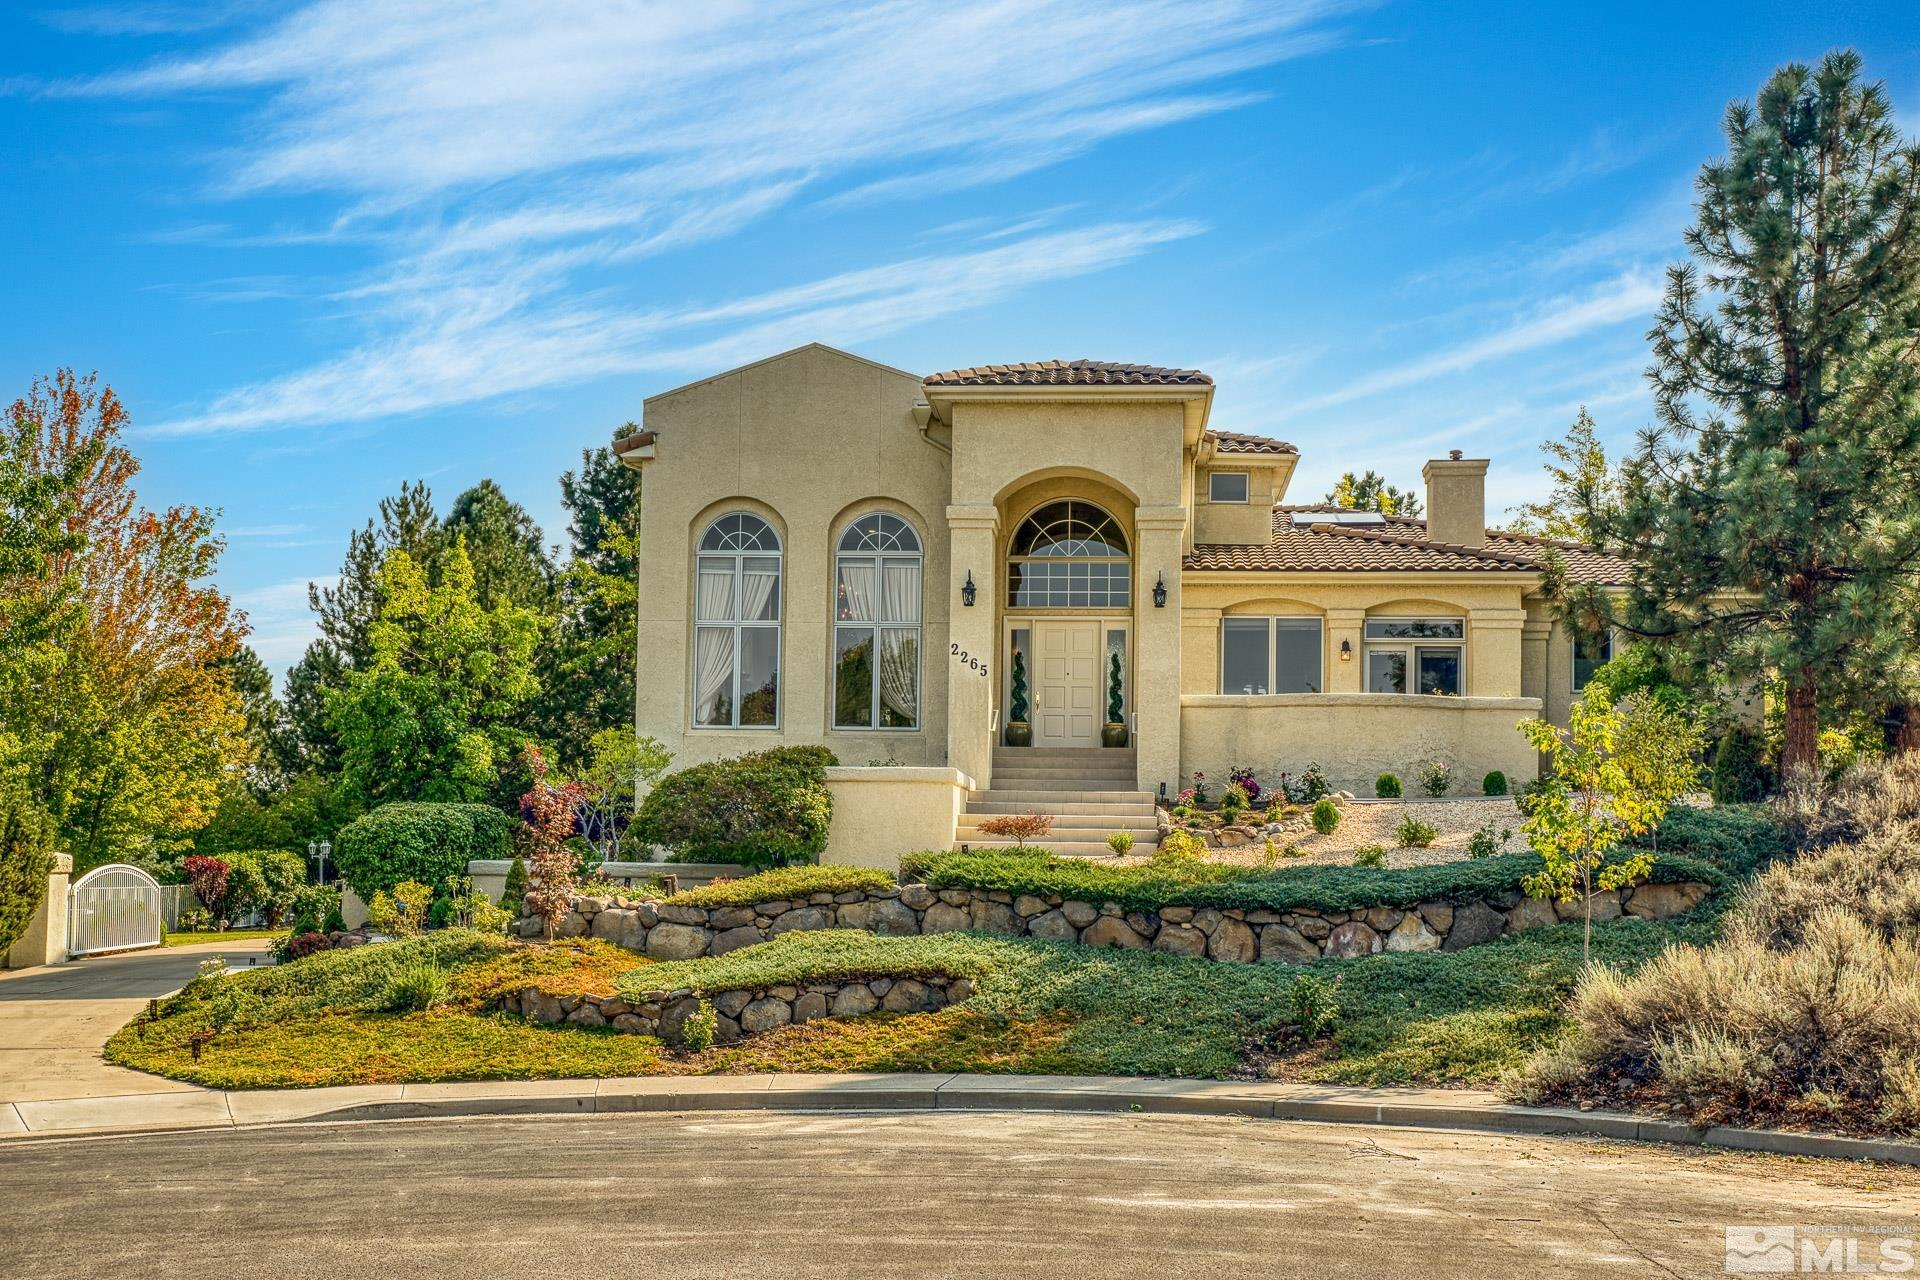 Image for 2265 Augusta Ave, Reno, NV 89509-5786